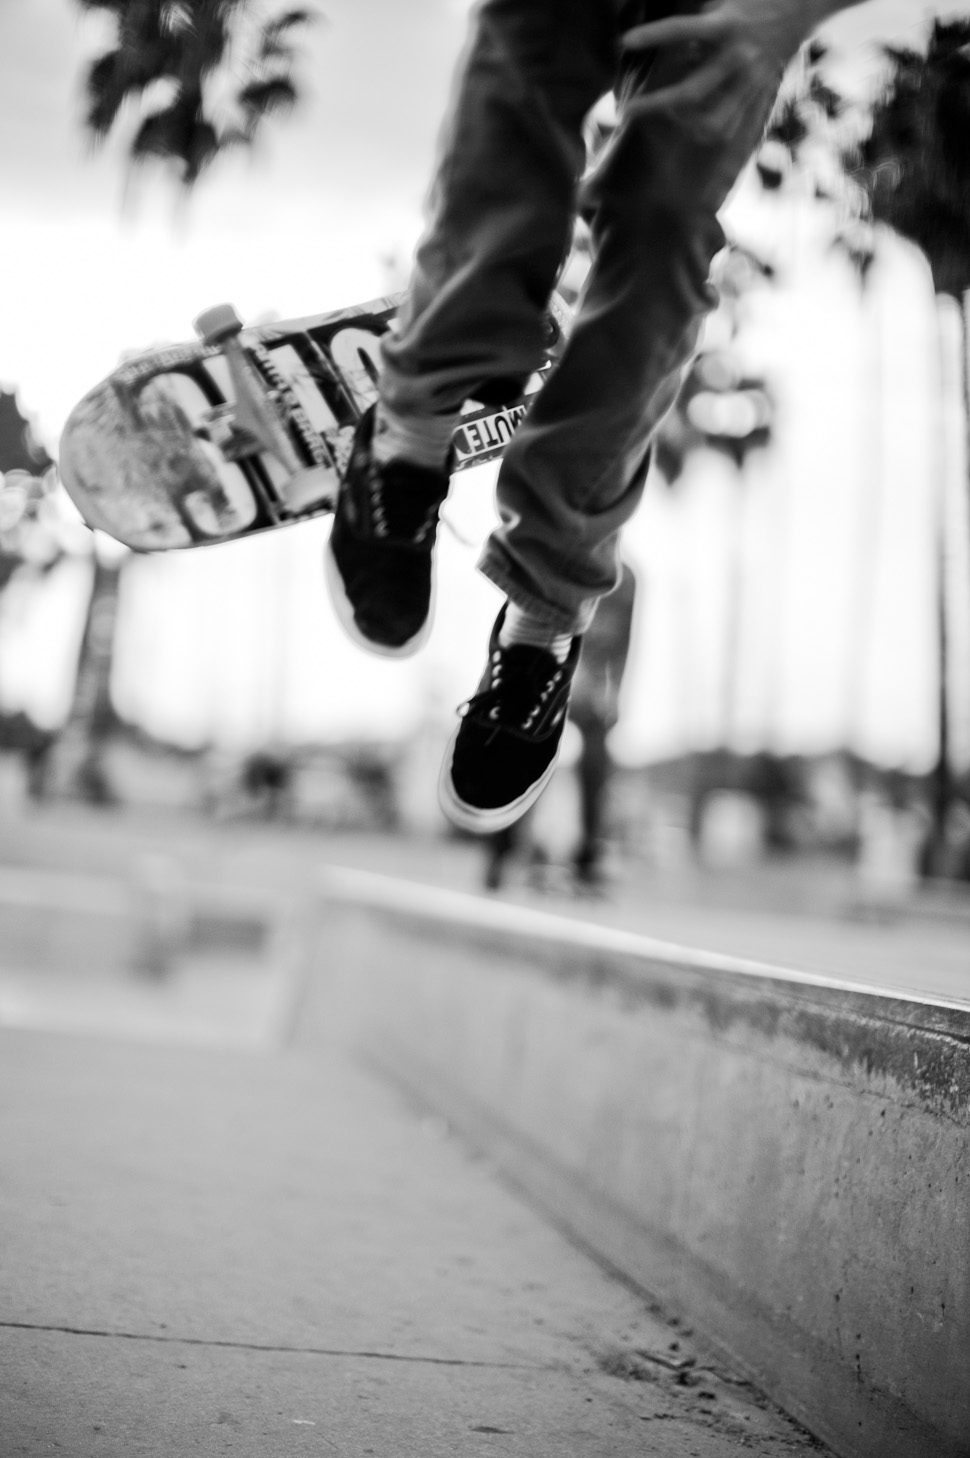 Santa Barbara Skater Park. Leica M 240 with Leica 50mm Noctilux-M ASPH f/0.95